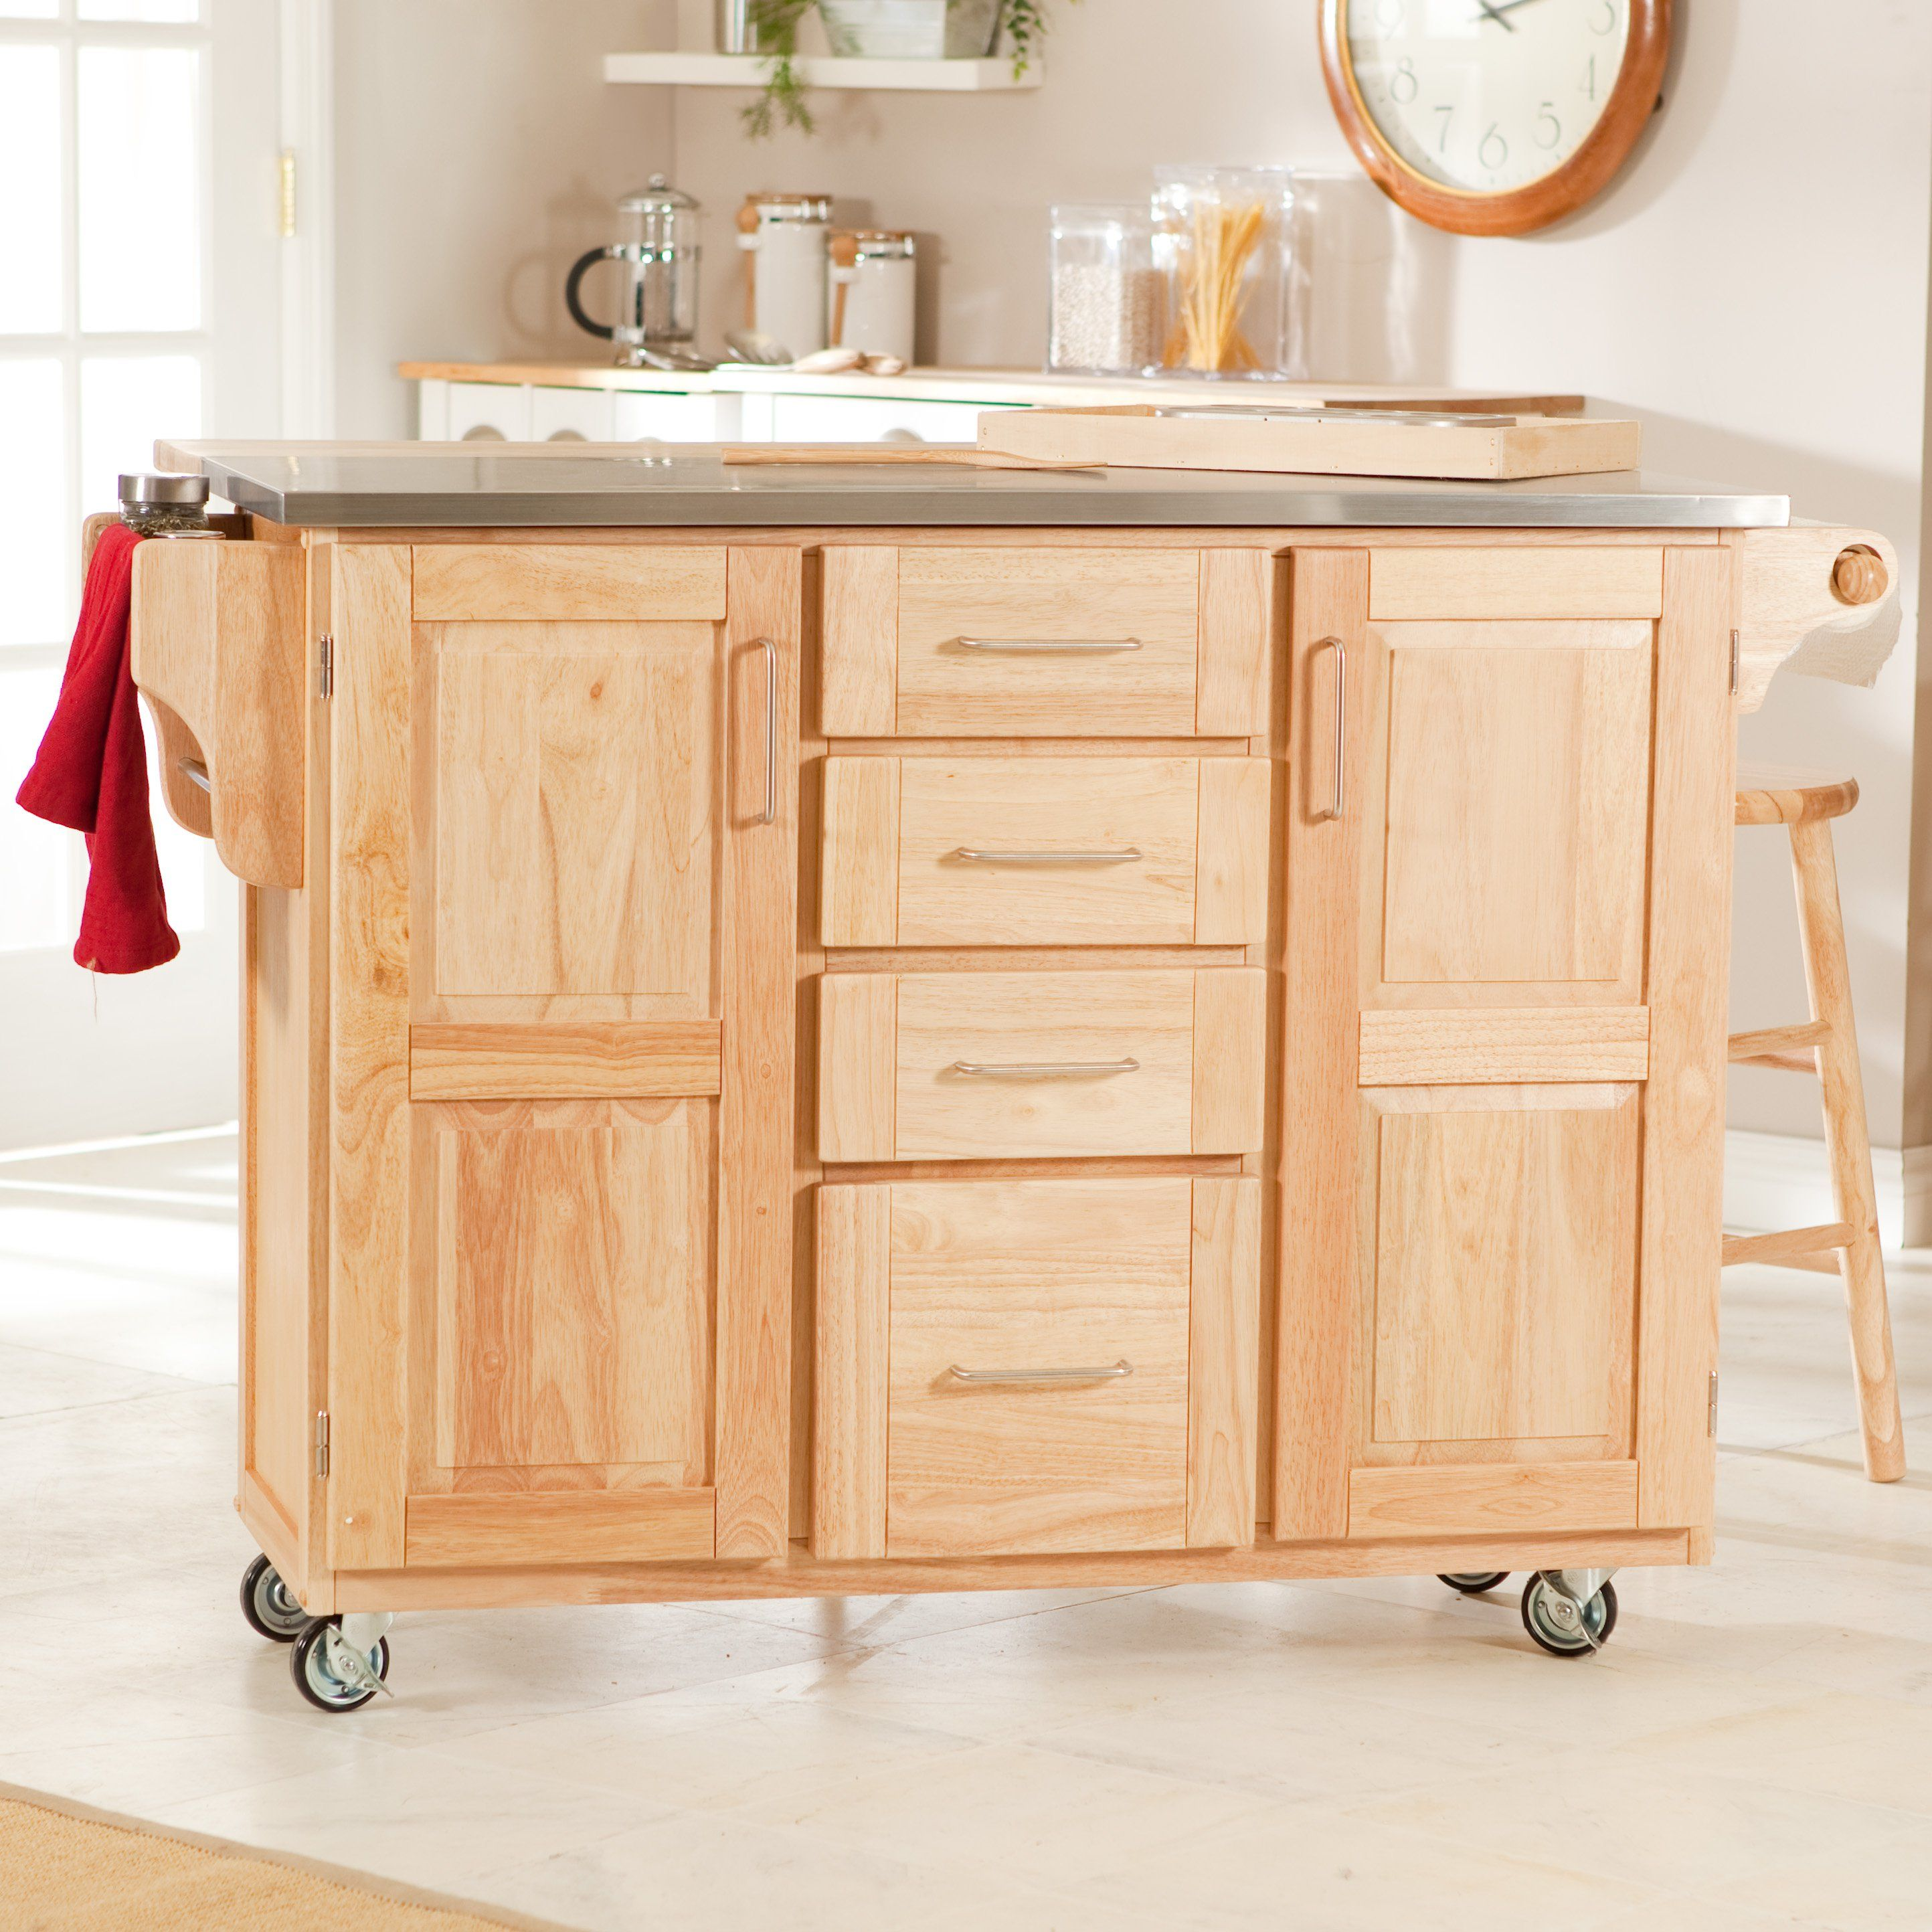 Kitchen Island On Wheels Uk: Have To Have It. The Fairmont Kitchen Cart With Optional